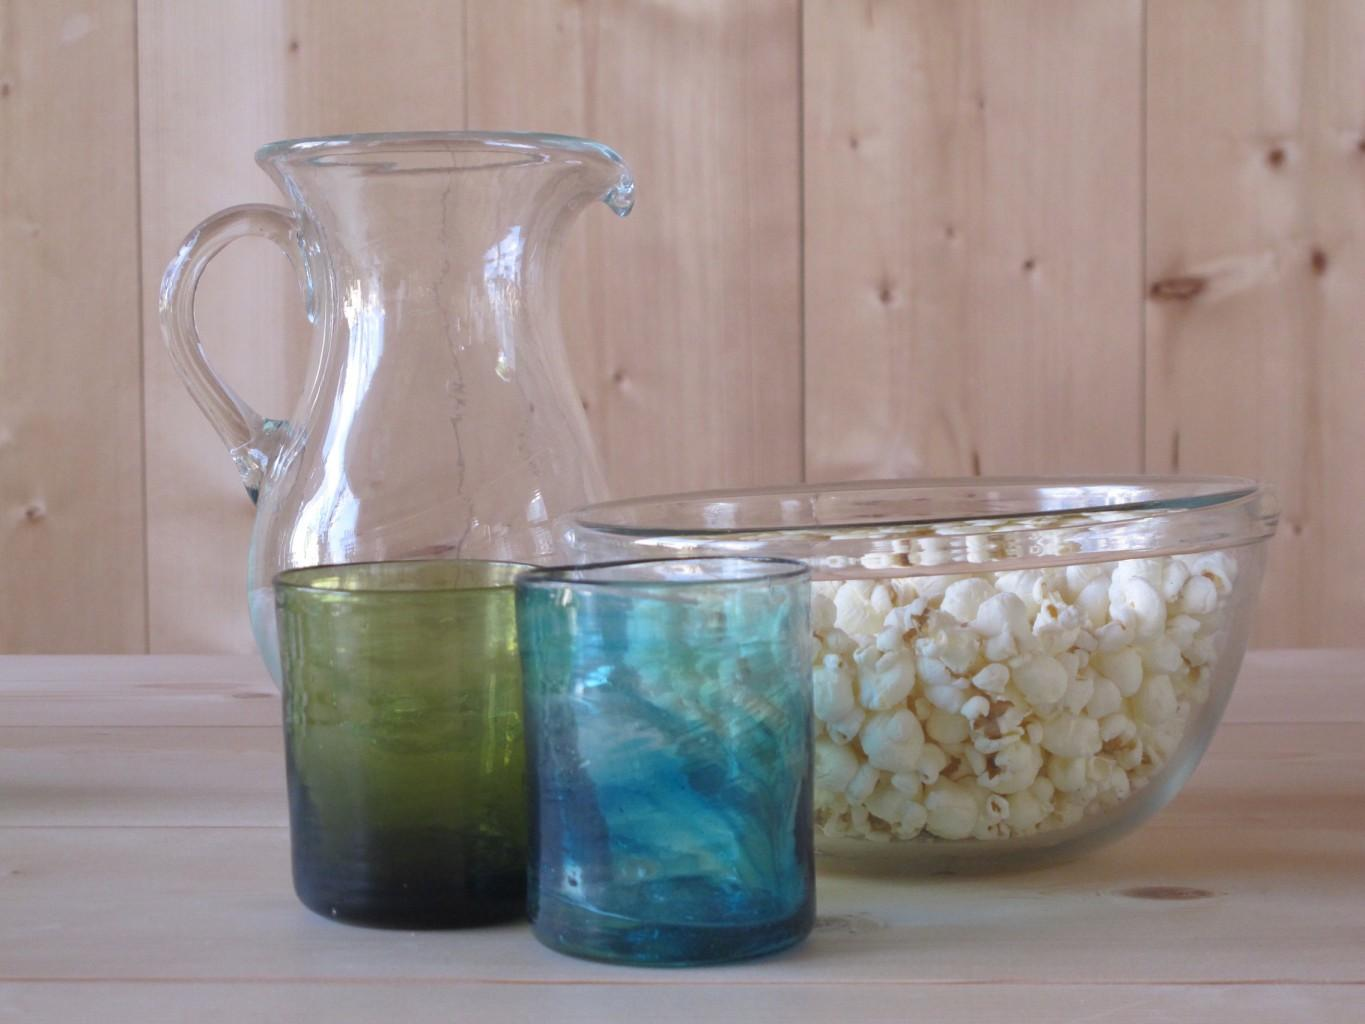 L to R: Verscia, Murano Olive, Murano Turquoise, Salad Bowl Big